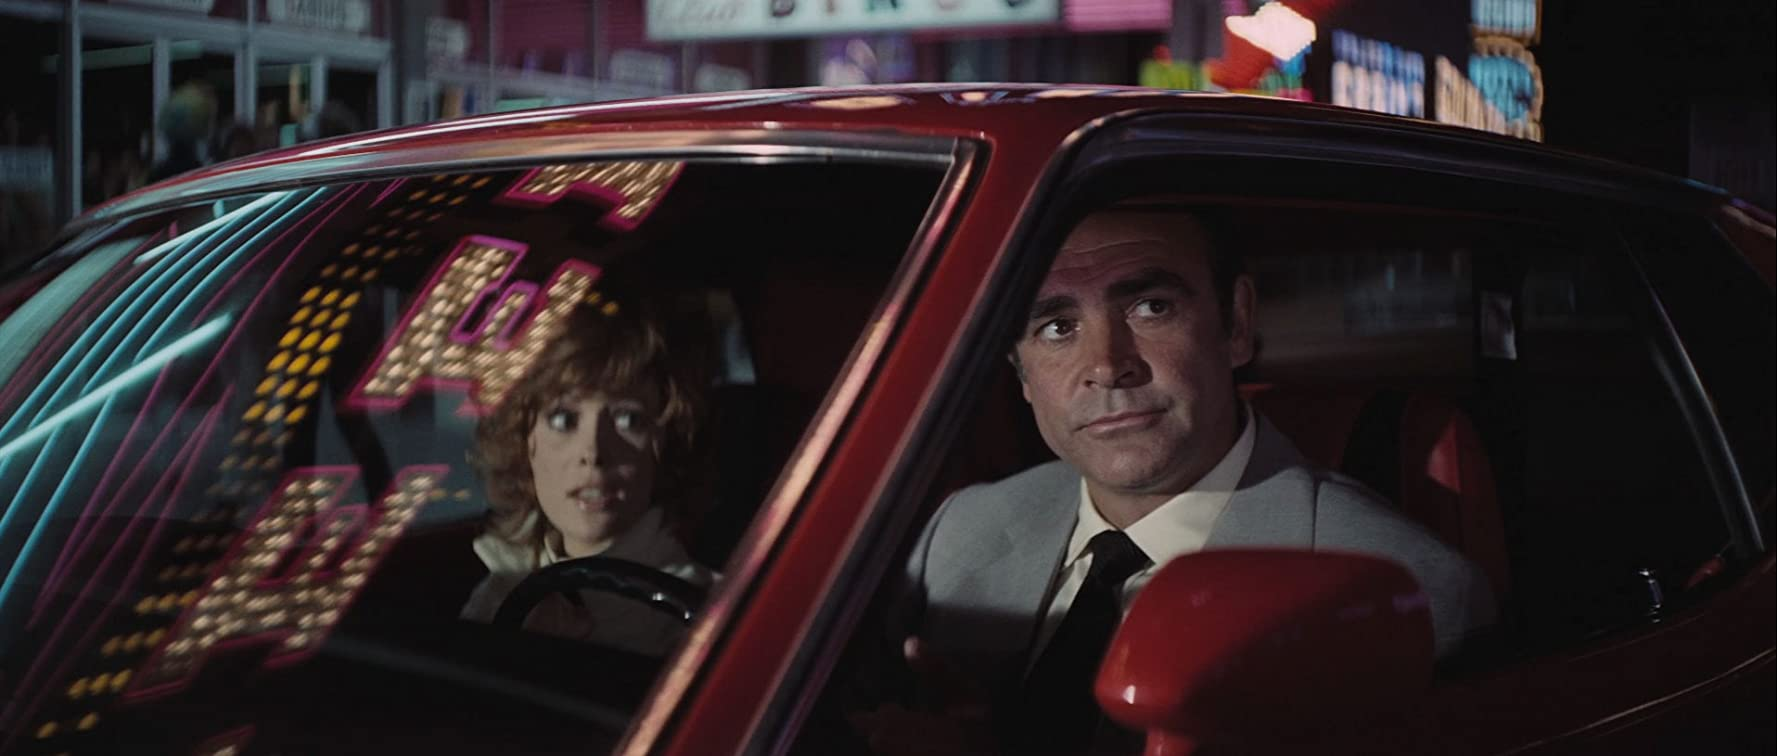 Sean Connery and Jill St. John in Diamonds Are Forever (1971)